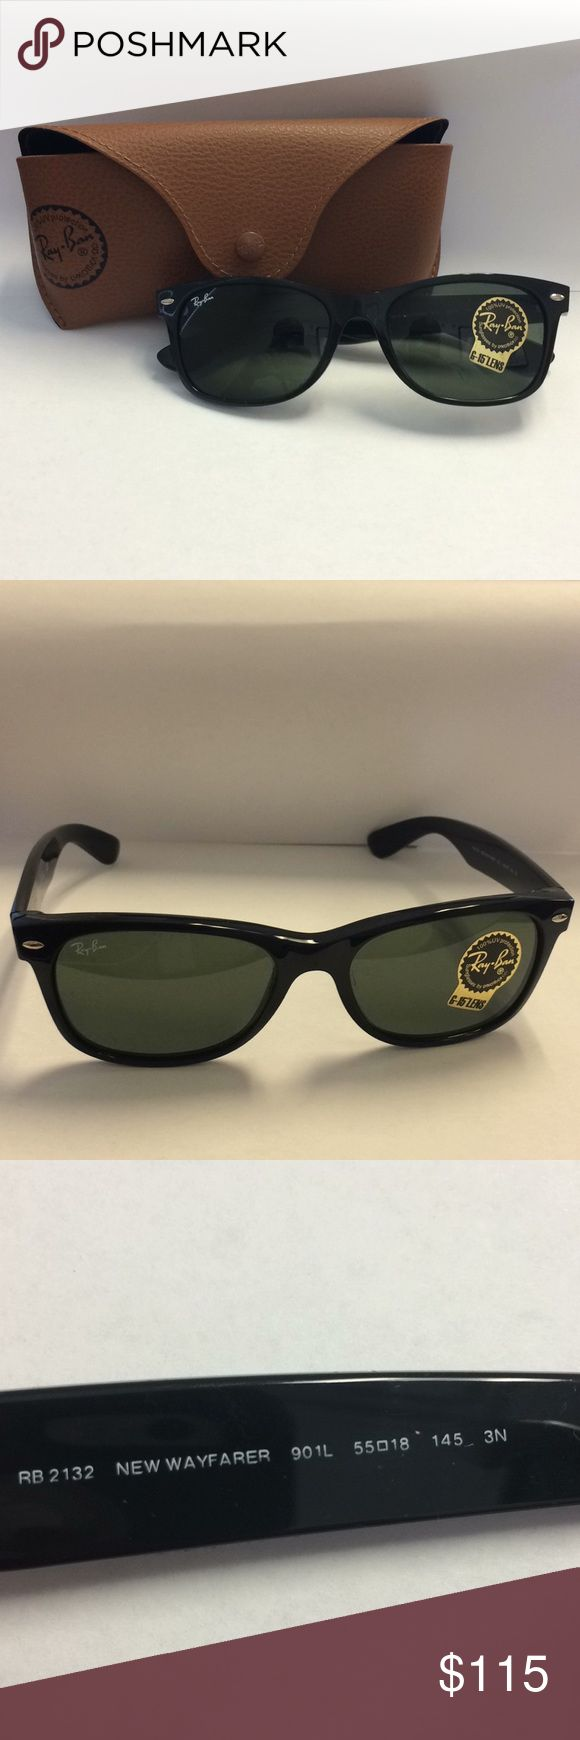 🎁🎉New Ray-Ban New Wayfarer Sunglasses RB2132🎉🎁 The New in Box Ray-Ban Wayfarer. Black plastic frames with green polarized G-15 Lens. Size shown within photo( 901L 55018 145 3N). New brown sunglasses case included! Ray-Ban Accessories Sunglasses